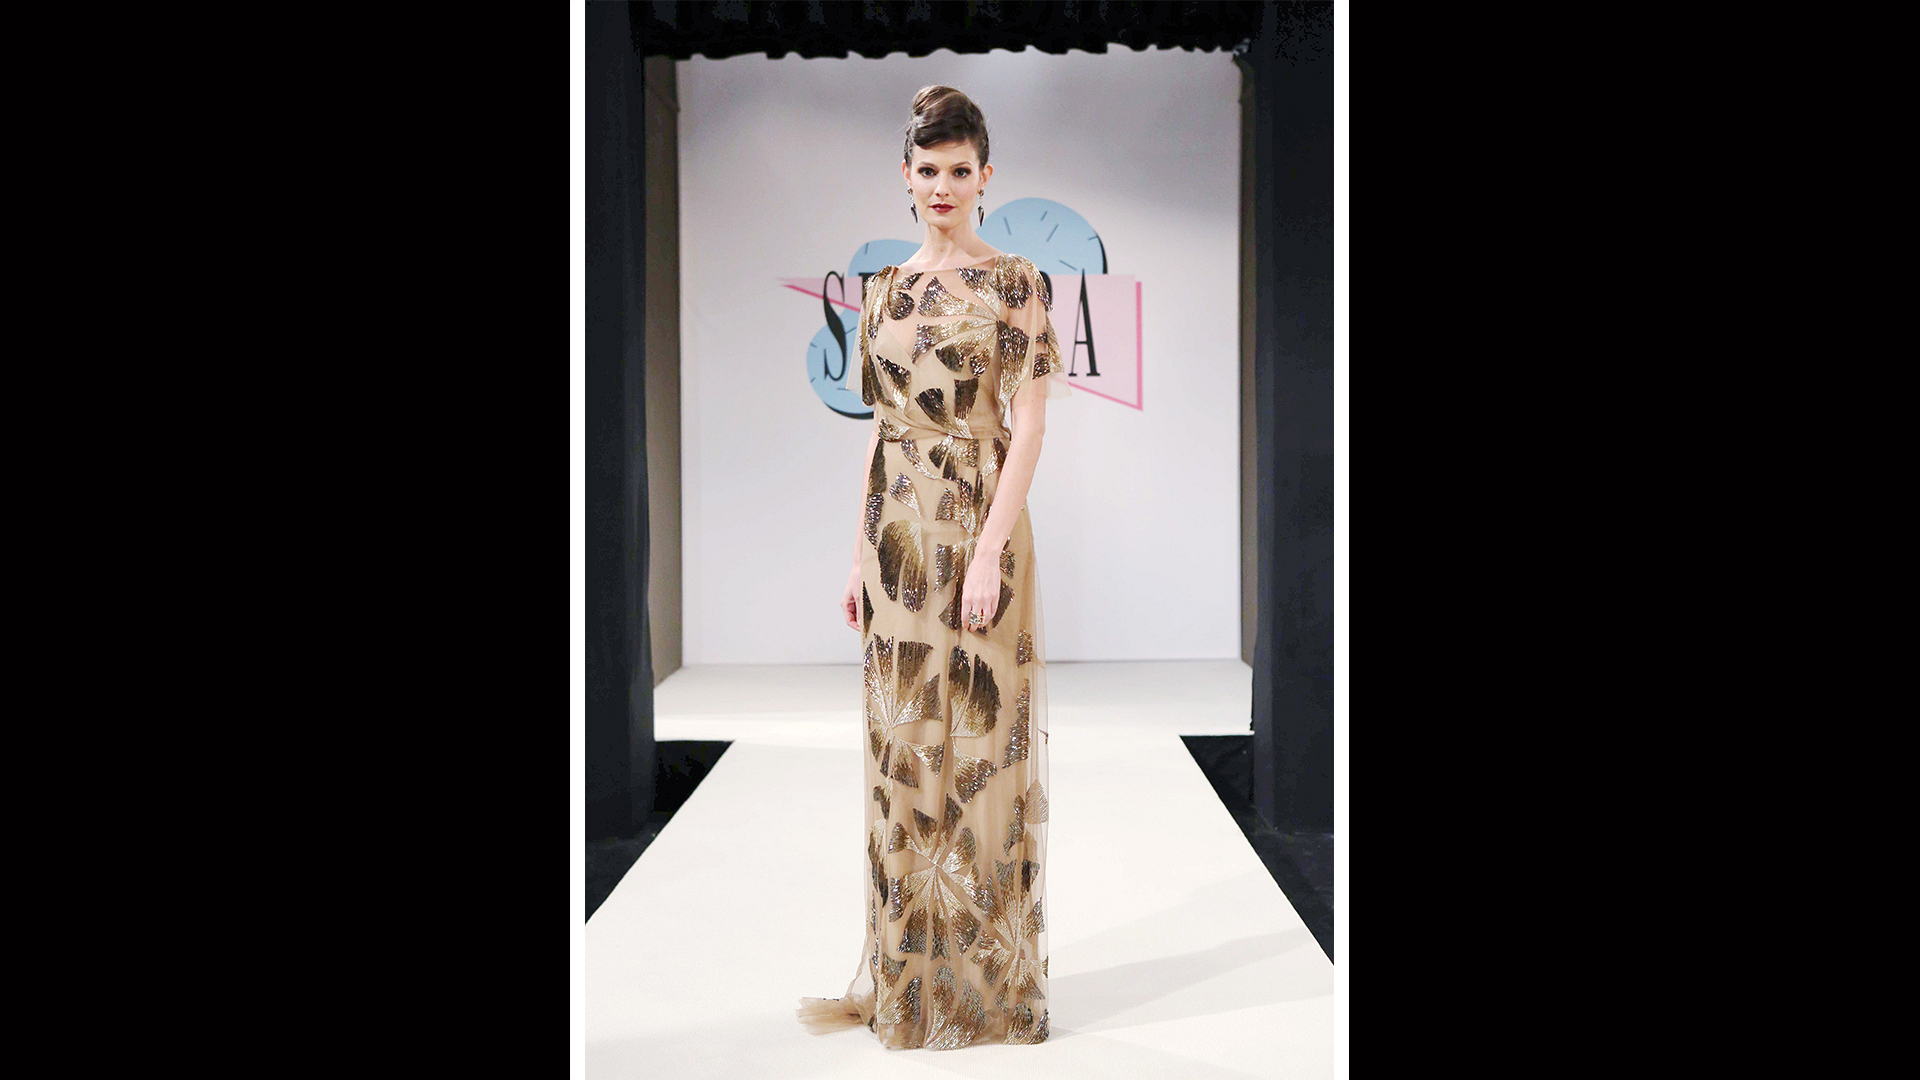 Gold beading and delicate fringe give this floor-length dress an art-deco feel.